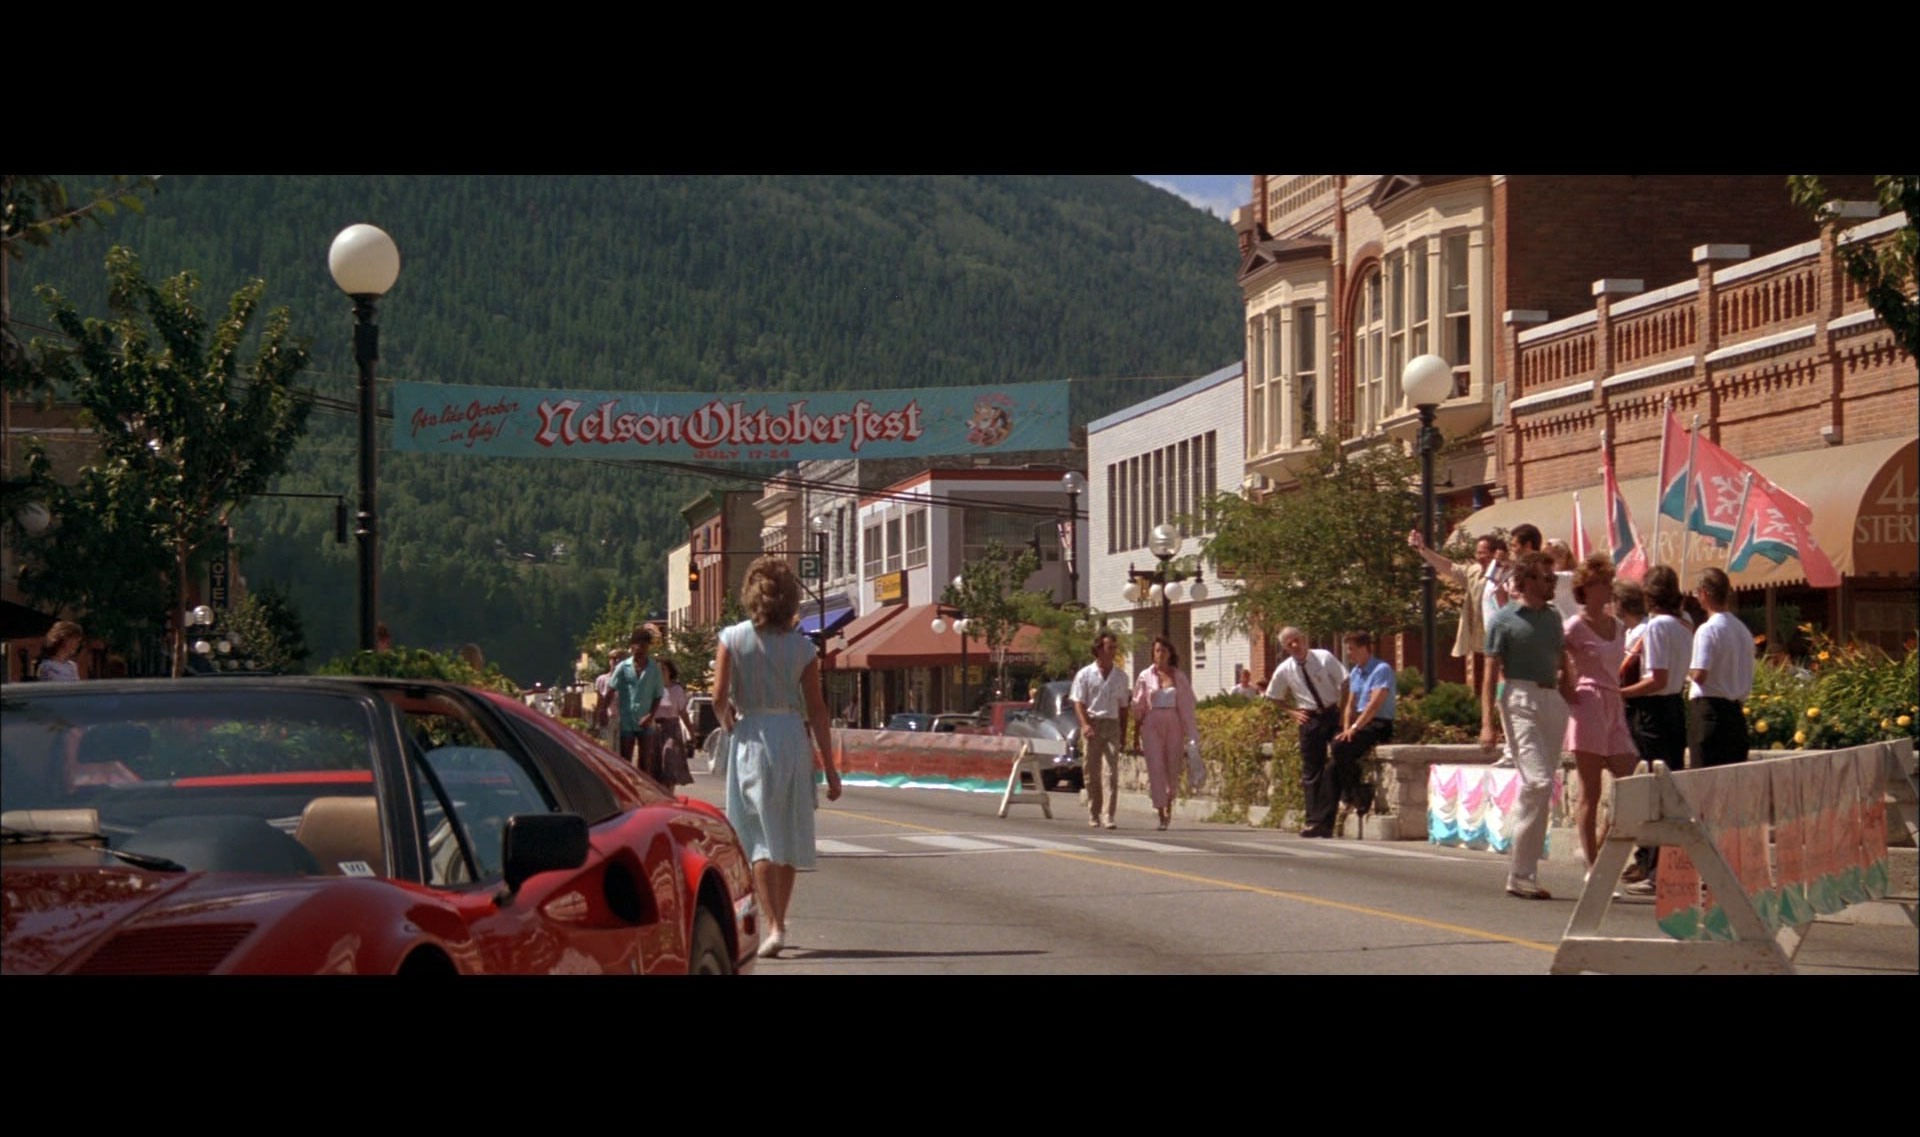 Roxanne Film Screen Shot, Nelson British Columbia